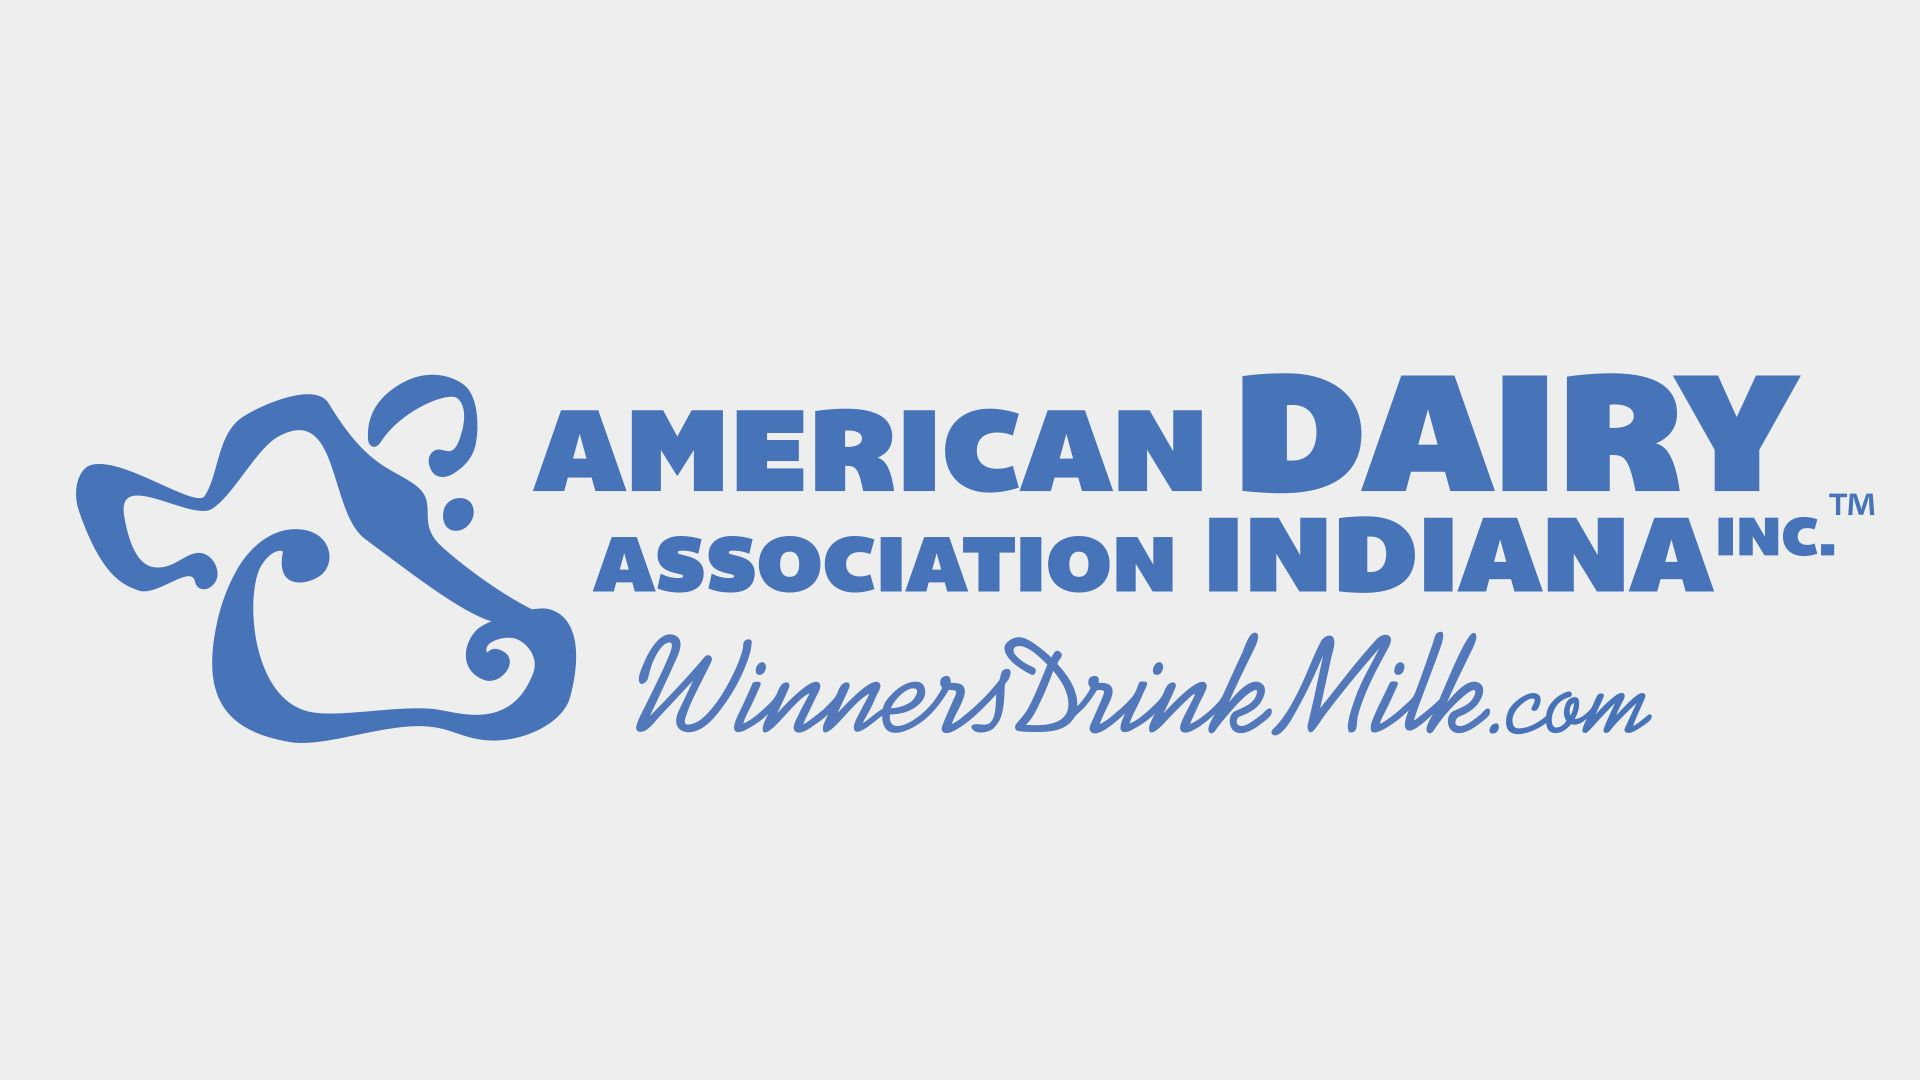 American Dairy Association Indiana INC. WinnersDrinkMilk.com